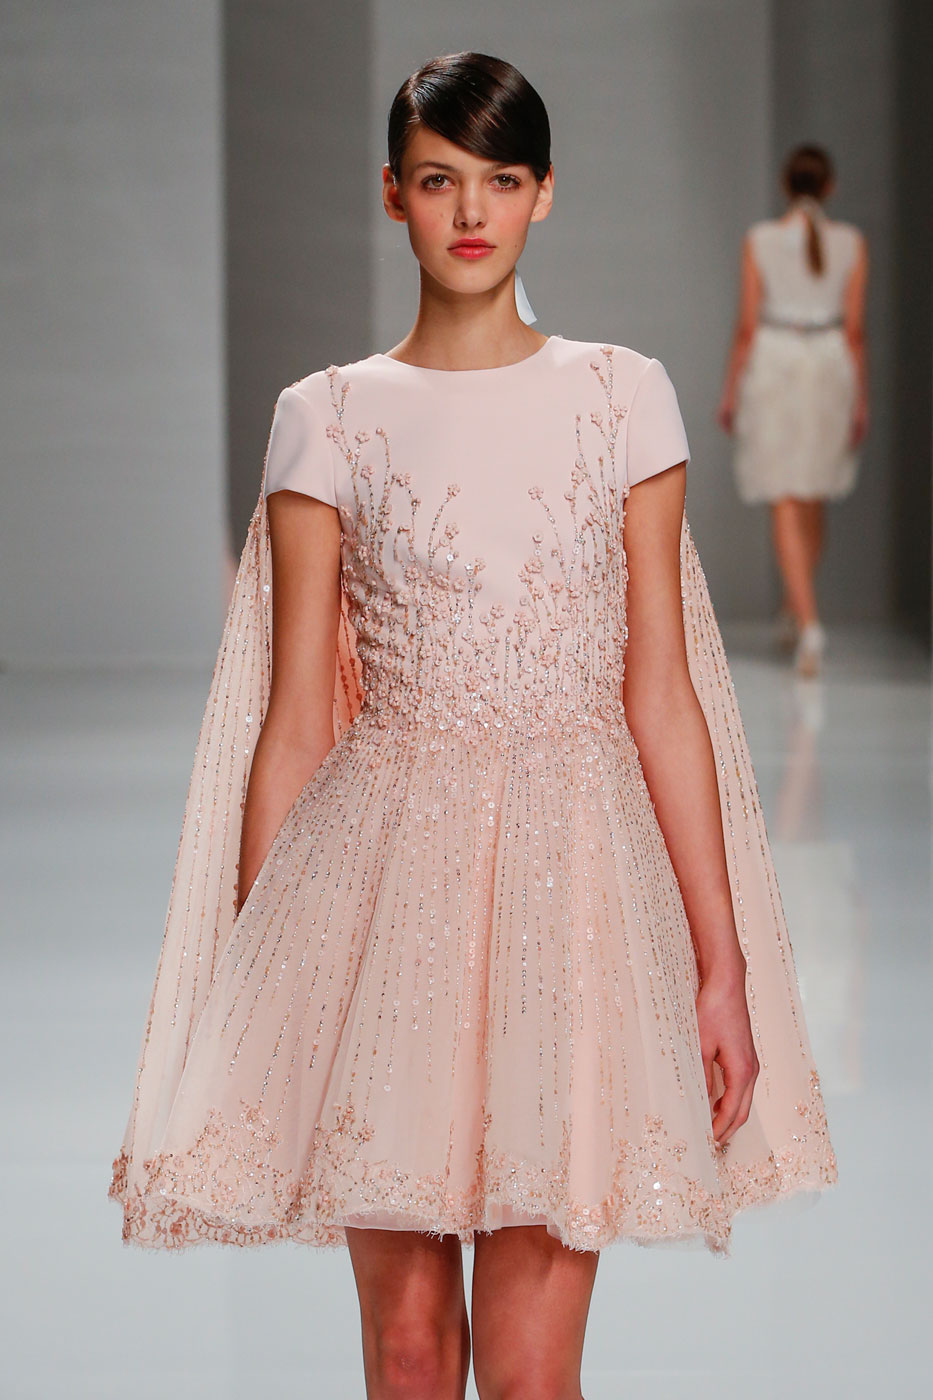 Georges-Hobeika-fashion-runway-show-haute-couture-paris-spring-2015-the-impression-70